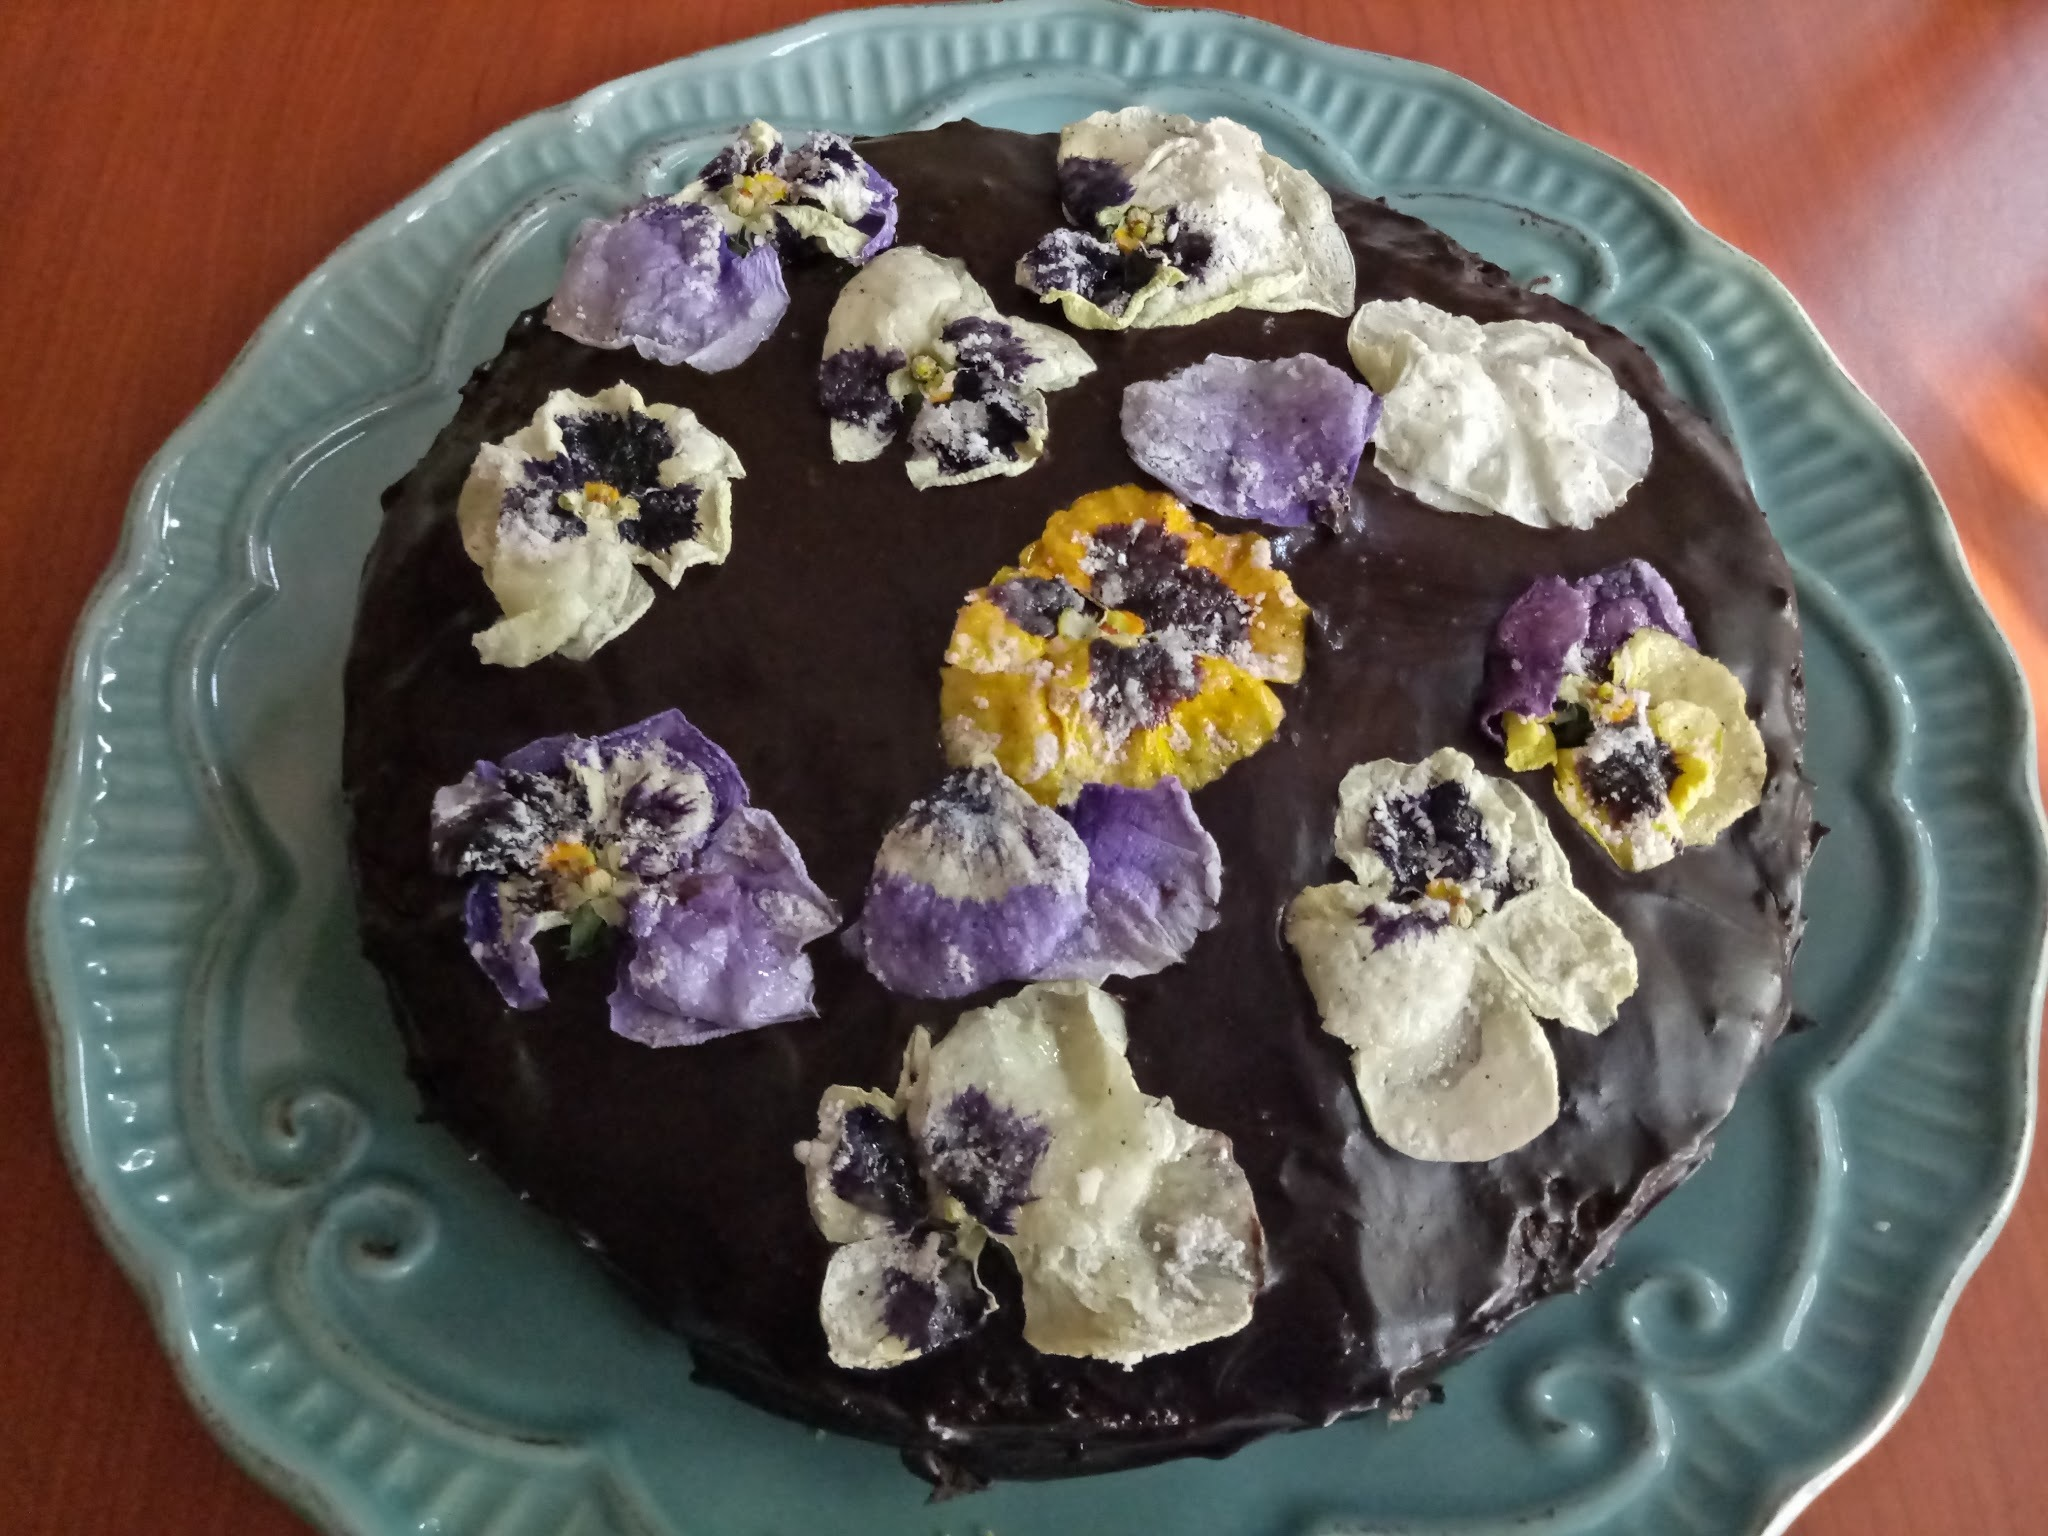 Matcha Cake With Chocolate Frosting & Candied Pansies